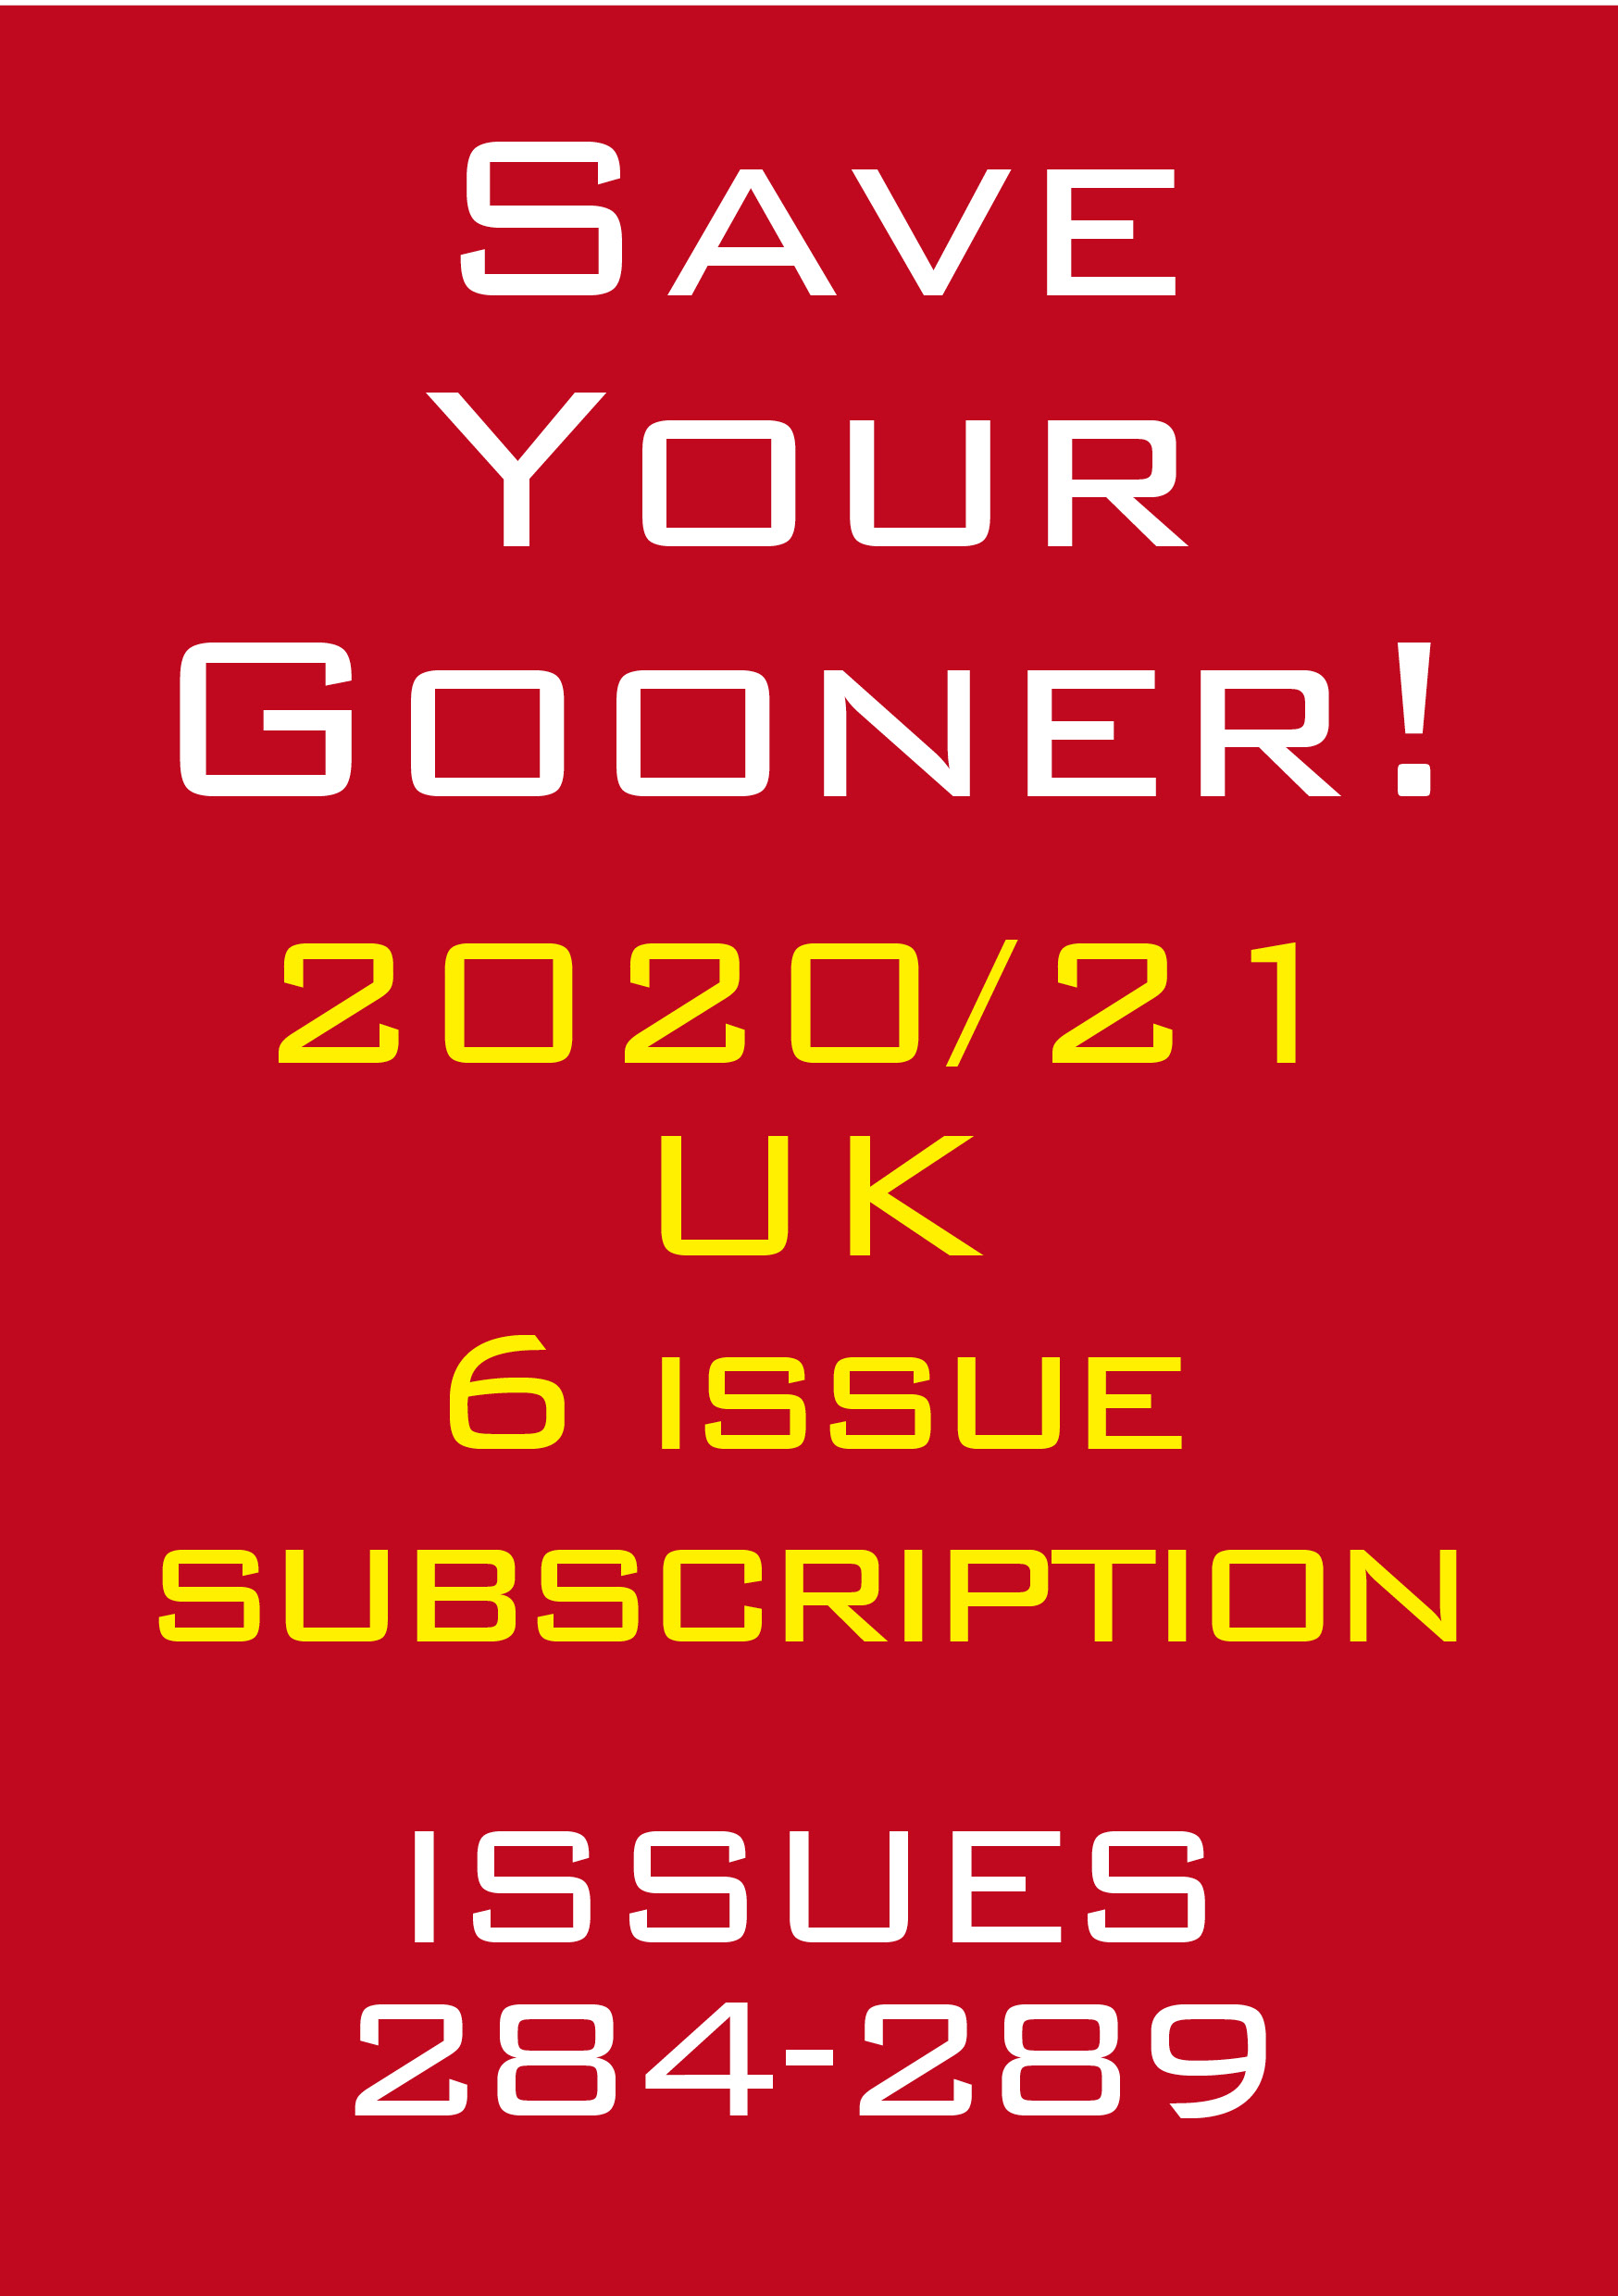 Save The Gooner 2020/21 subscription  (UK)